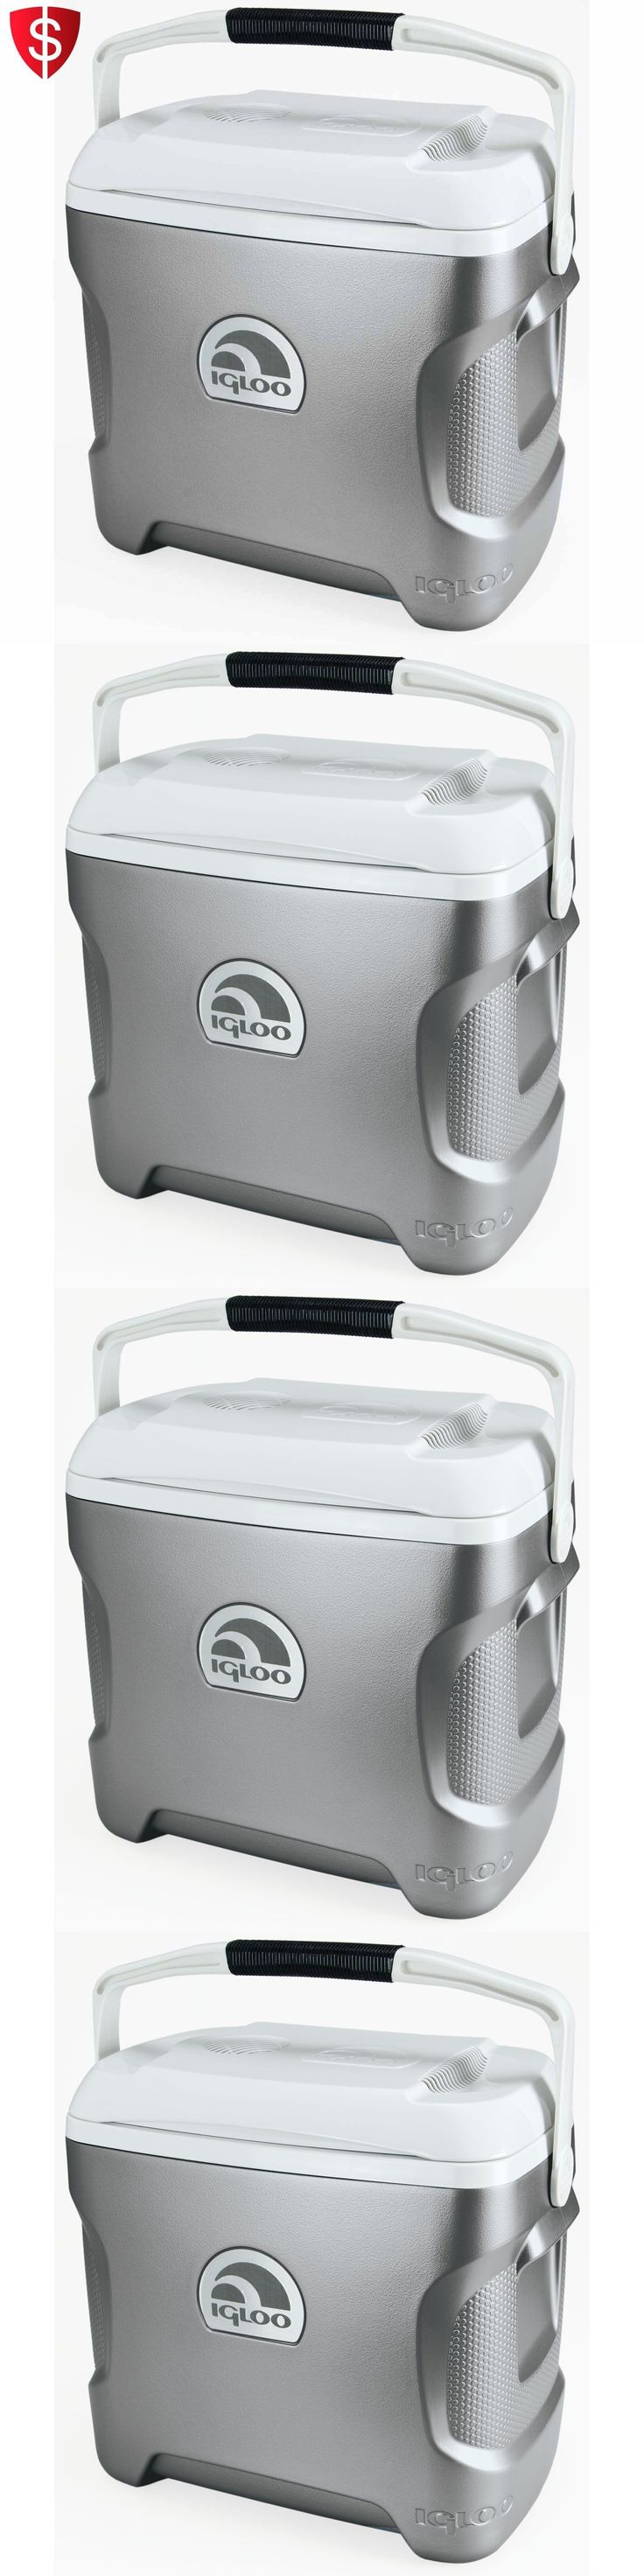 12-Volt Portable Appliances: Iceless Cooler Thermoelectric Travel Car Portable Wine Fridge 12 Volts 28 Quart -> BUY IT NOW ONLY: $79.4 on eBay!